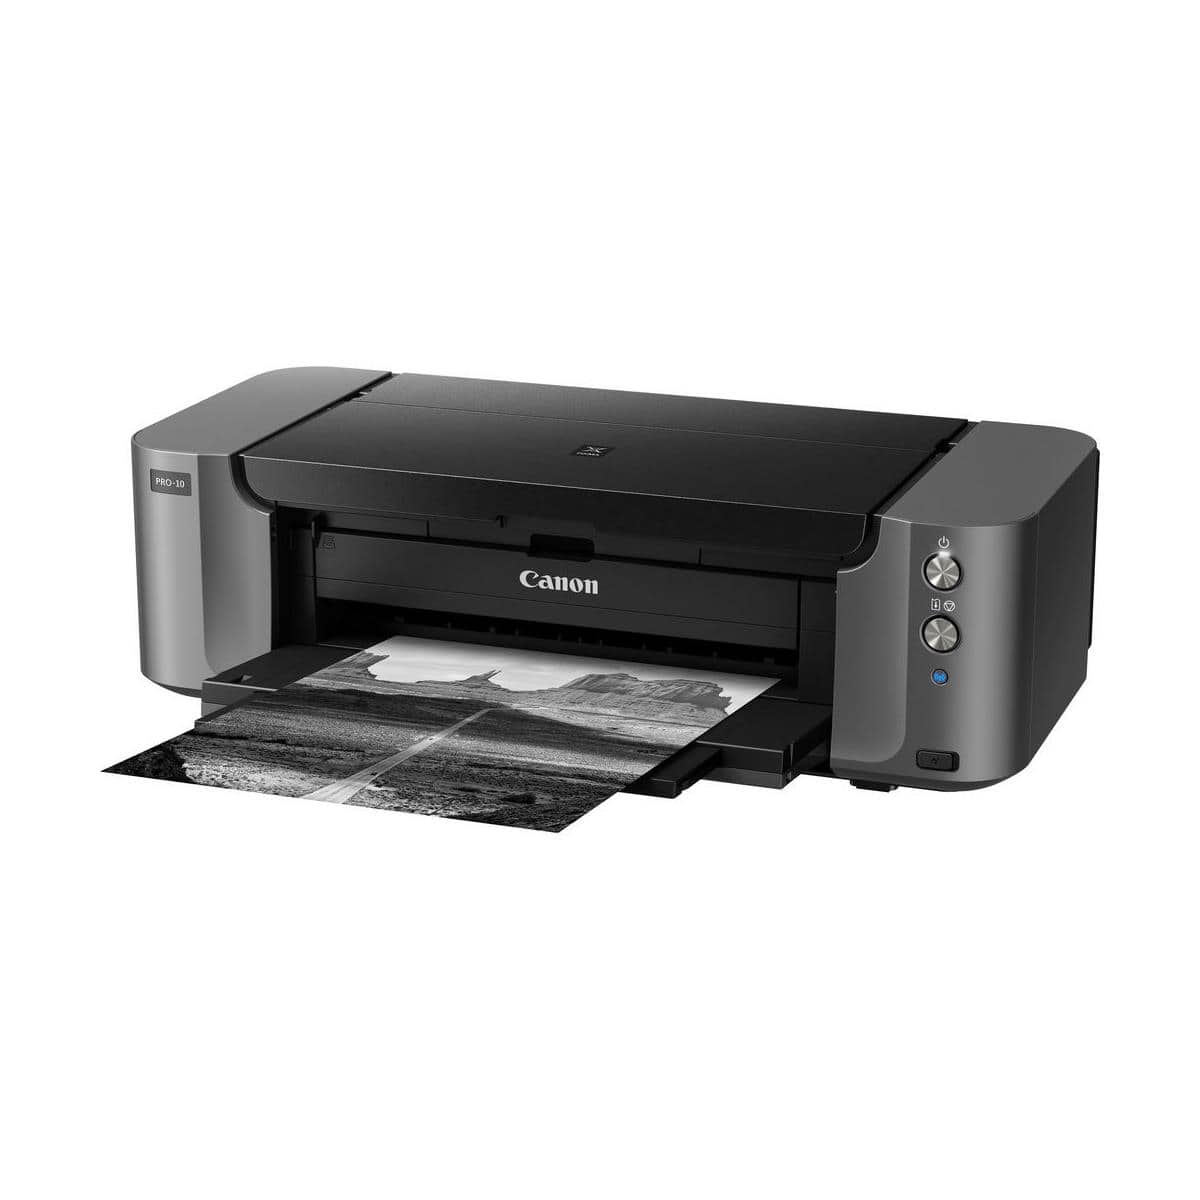 Canon Pixma Pro-10 for 50$ after Rebate YMMV $50